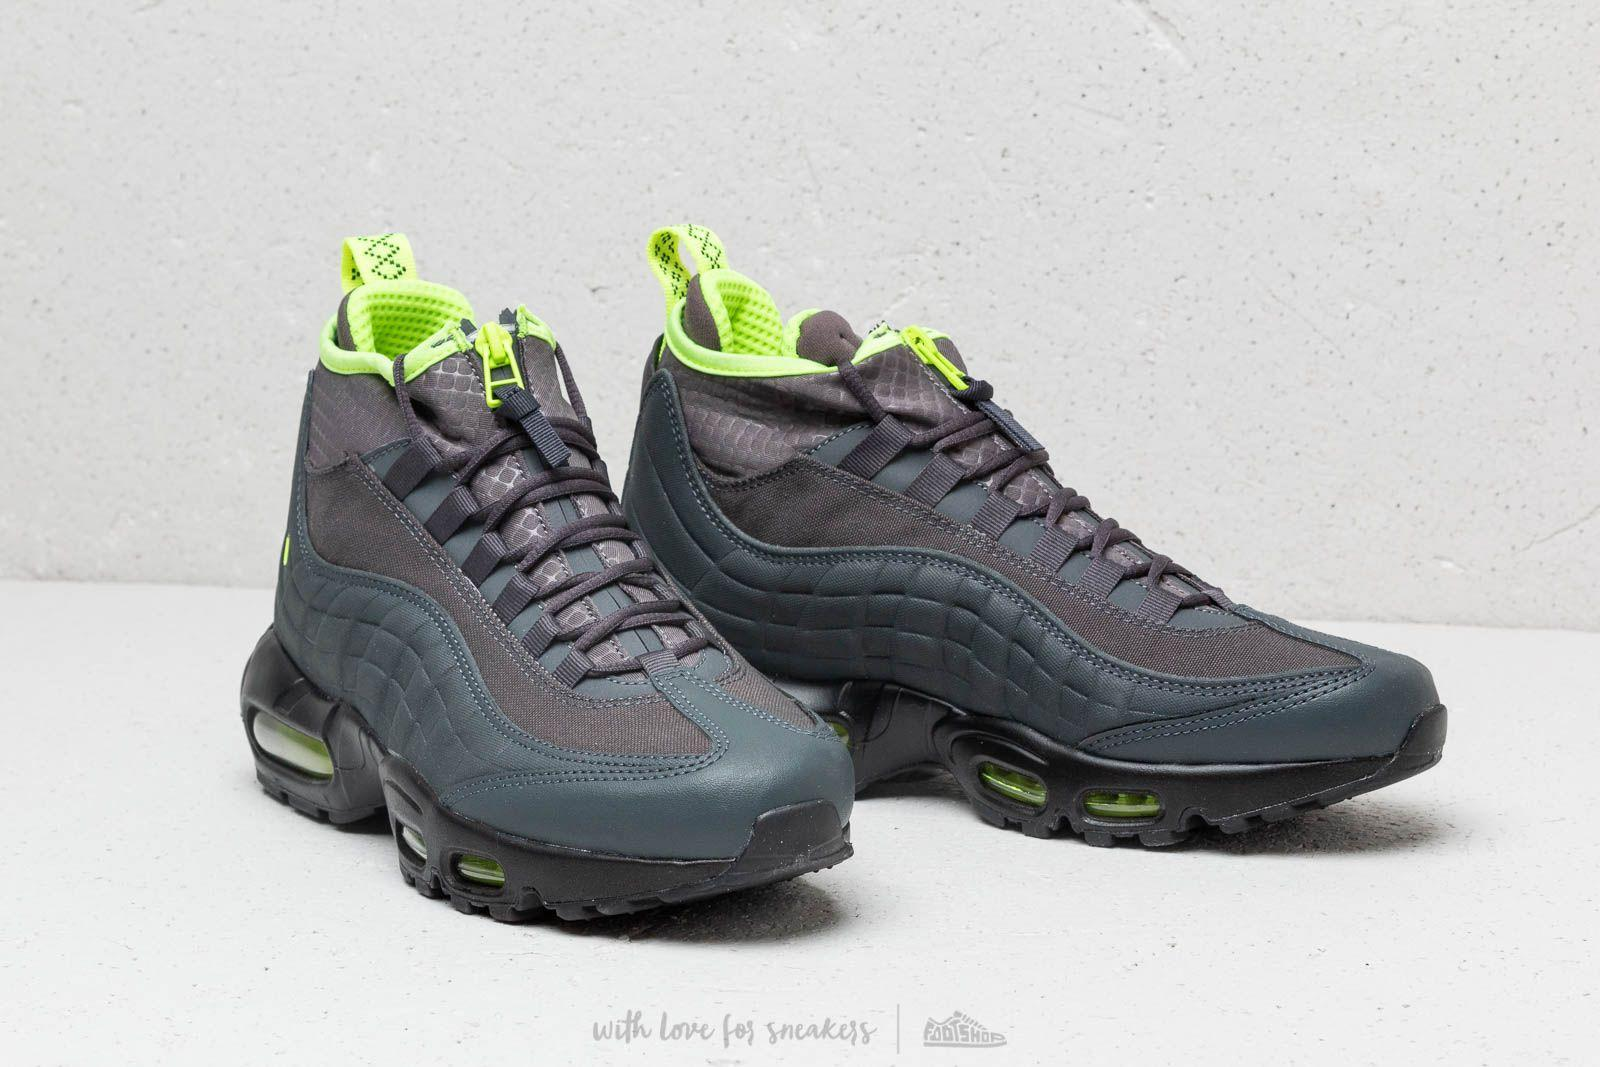 size 40 8407f 8aaa0 Nike Air Max 95 Sneakerboot Anthracite  Volt-dark Frey for Men - Lyst